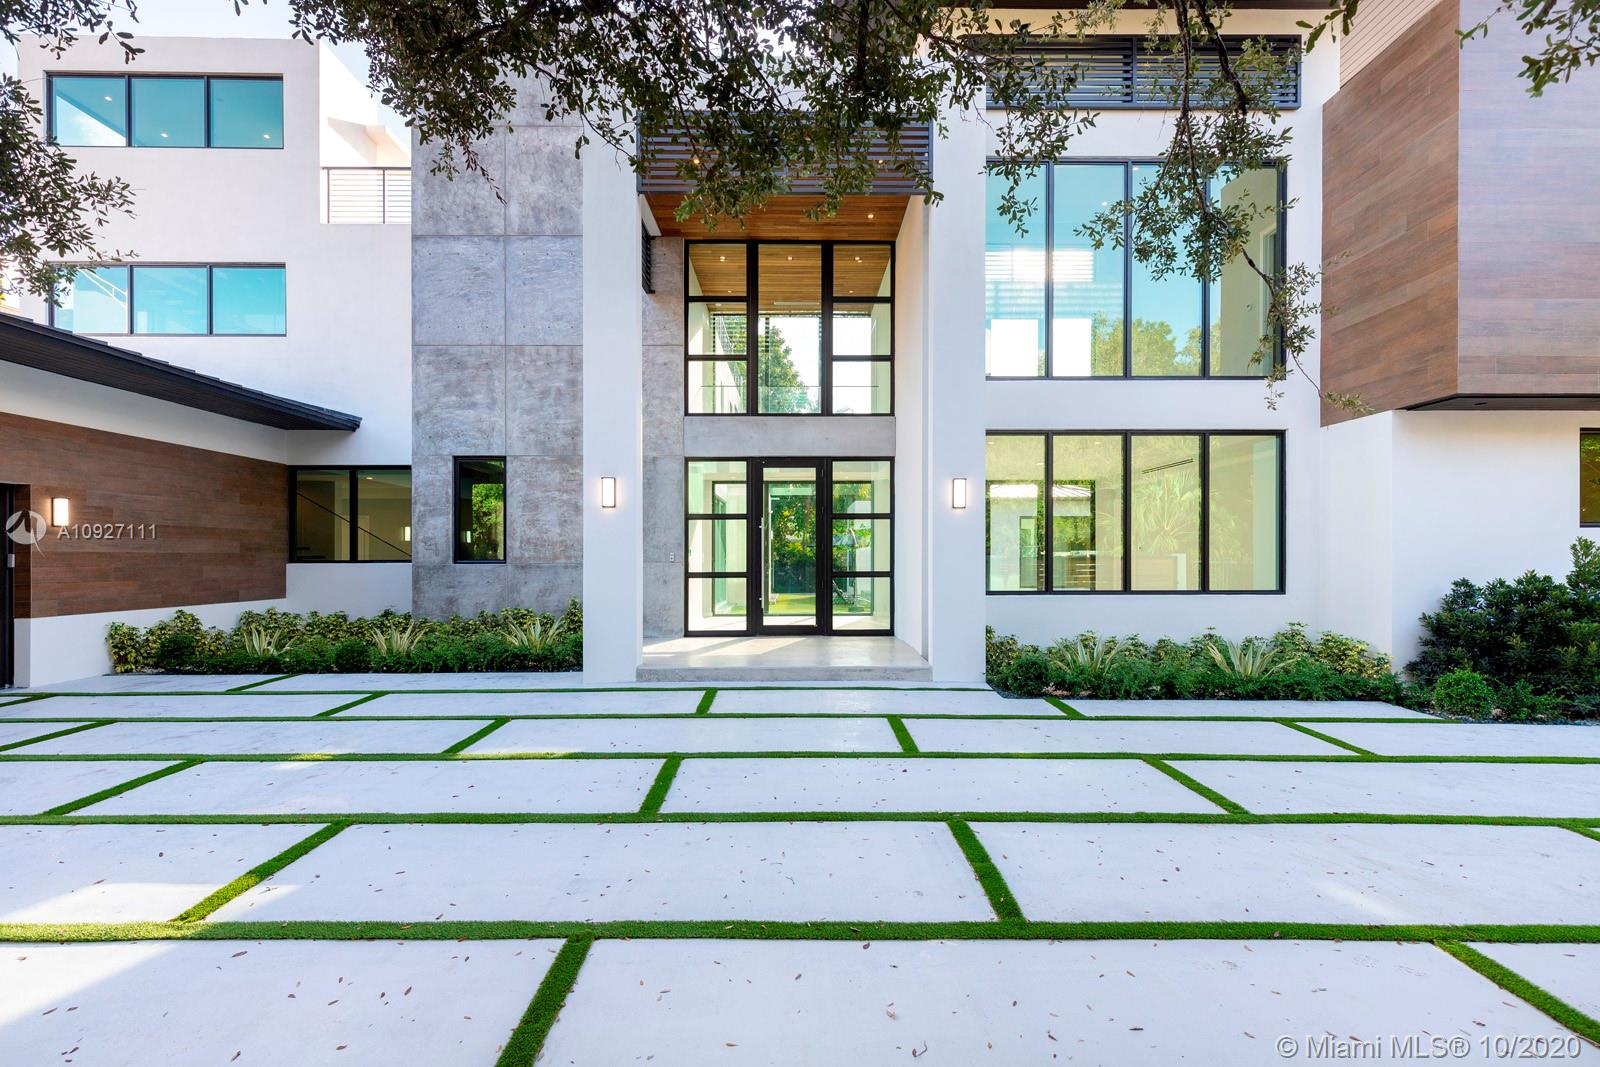 A perfectly-crafted, modern new construction home in the heart of South Miami's High Pines neighborhood. This 6/7.5 home has it all: a spectacular entryway with a 10-ft door and 10+ft ceilings throughout the first floor; a grand, open kitchen with custom cabinetry and appliances from Mia Cucina; impeccably-designed bathrooms and custom closets; an elevator; rooftop deck with summer kitchen; smart-home technology throughout; and a dedicated home gym with sauna and steam rooms. The home is centered around a resort-like pool that can be seen from almost every room in the house. Incredible construction and a prime location make this an unparalleled offering.